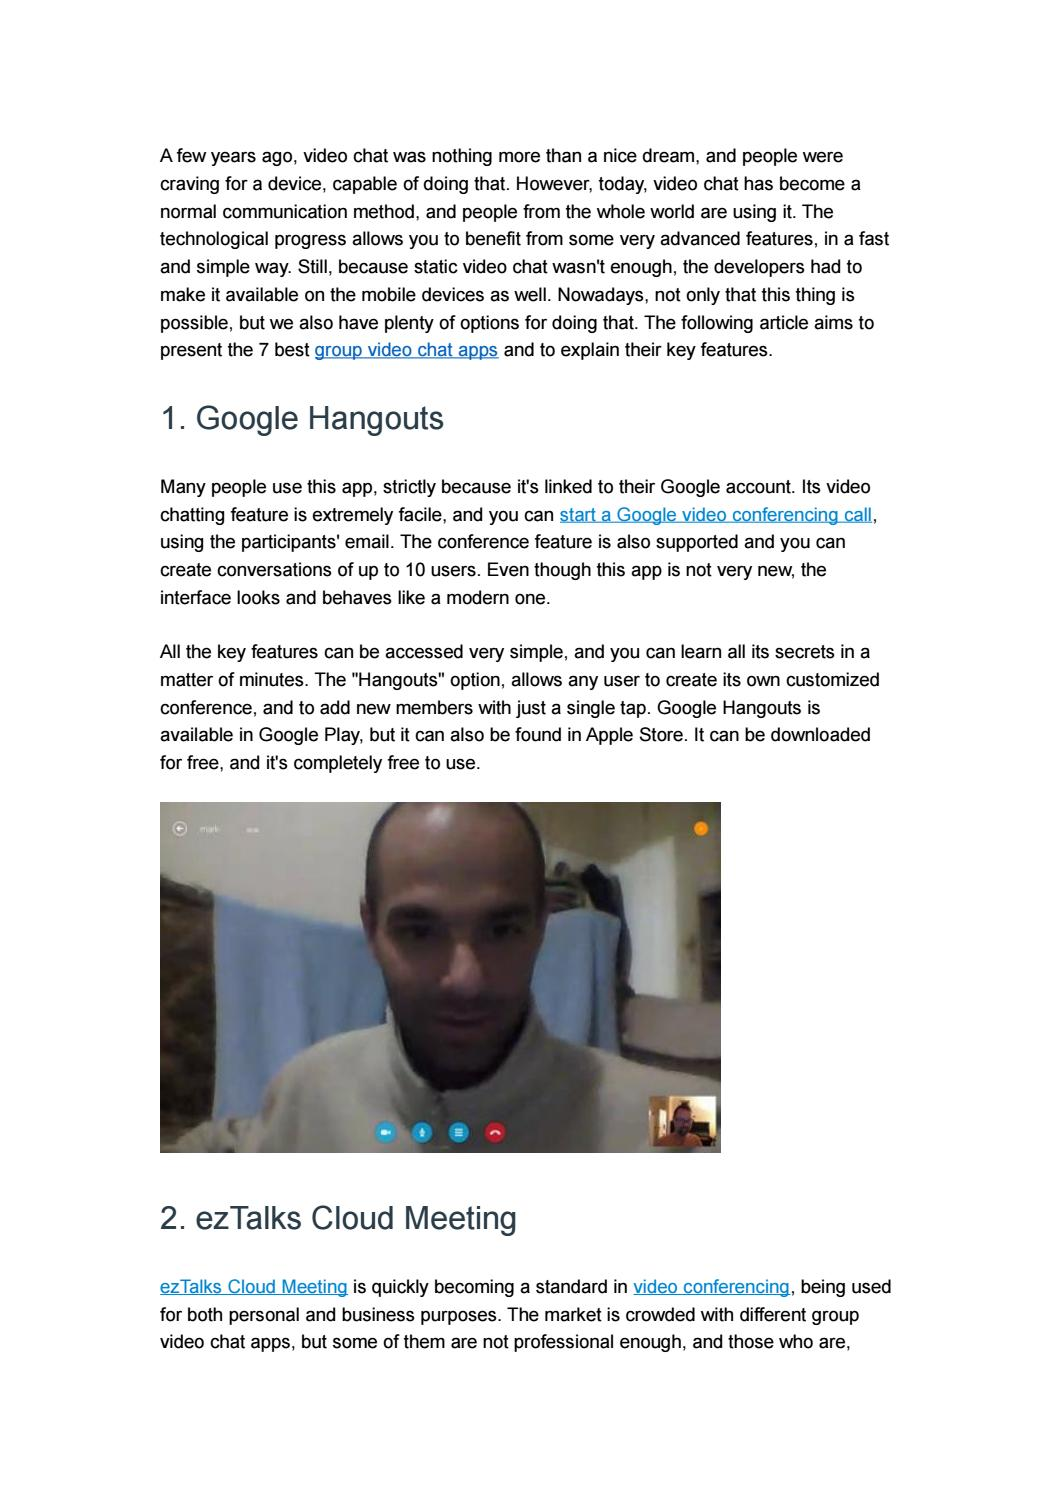 7 Best Group Video Chat Apps by ezTalks - issuu